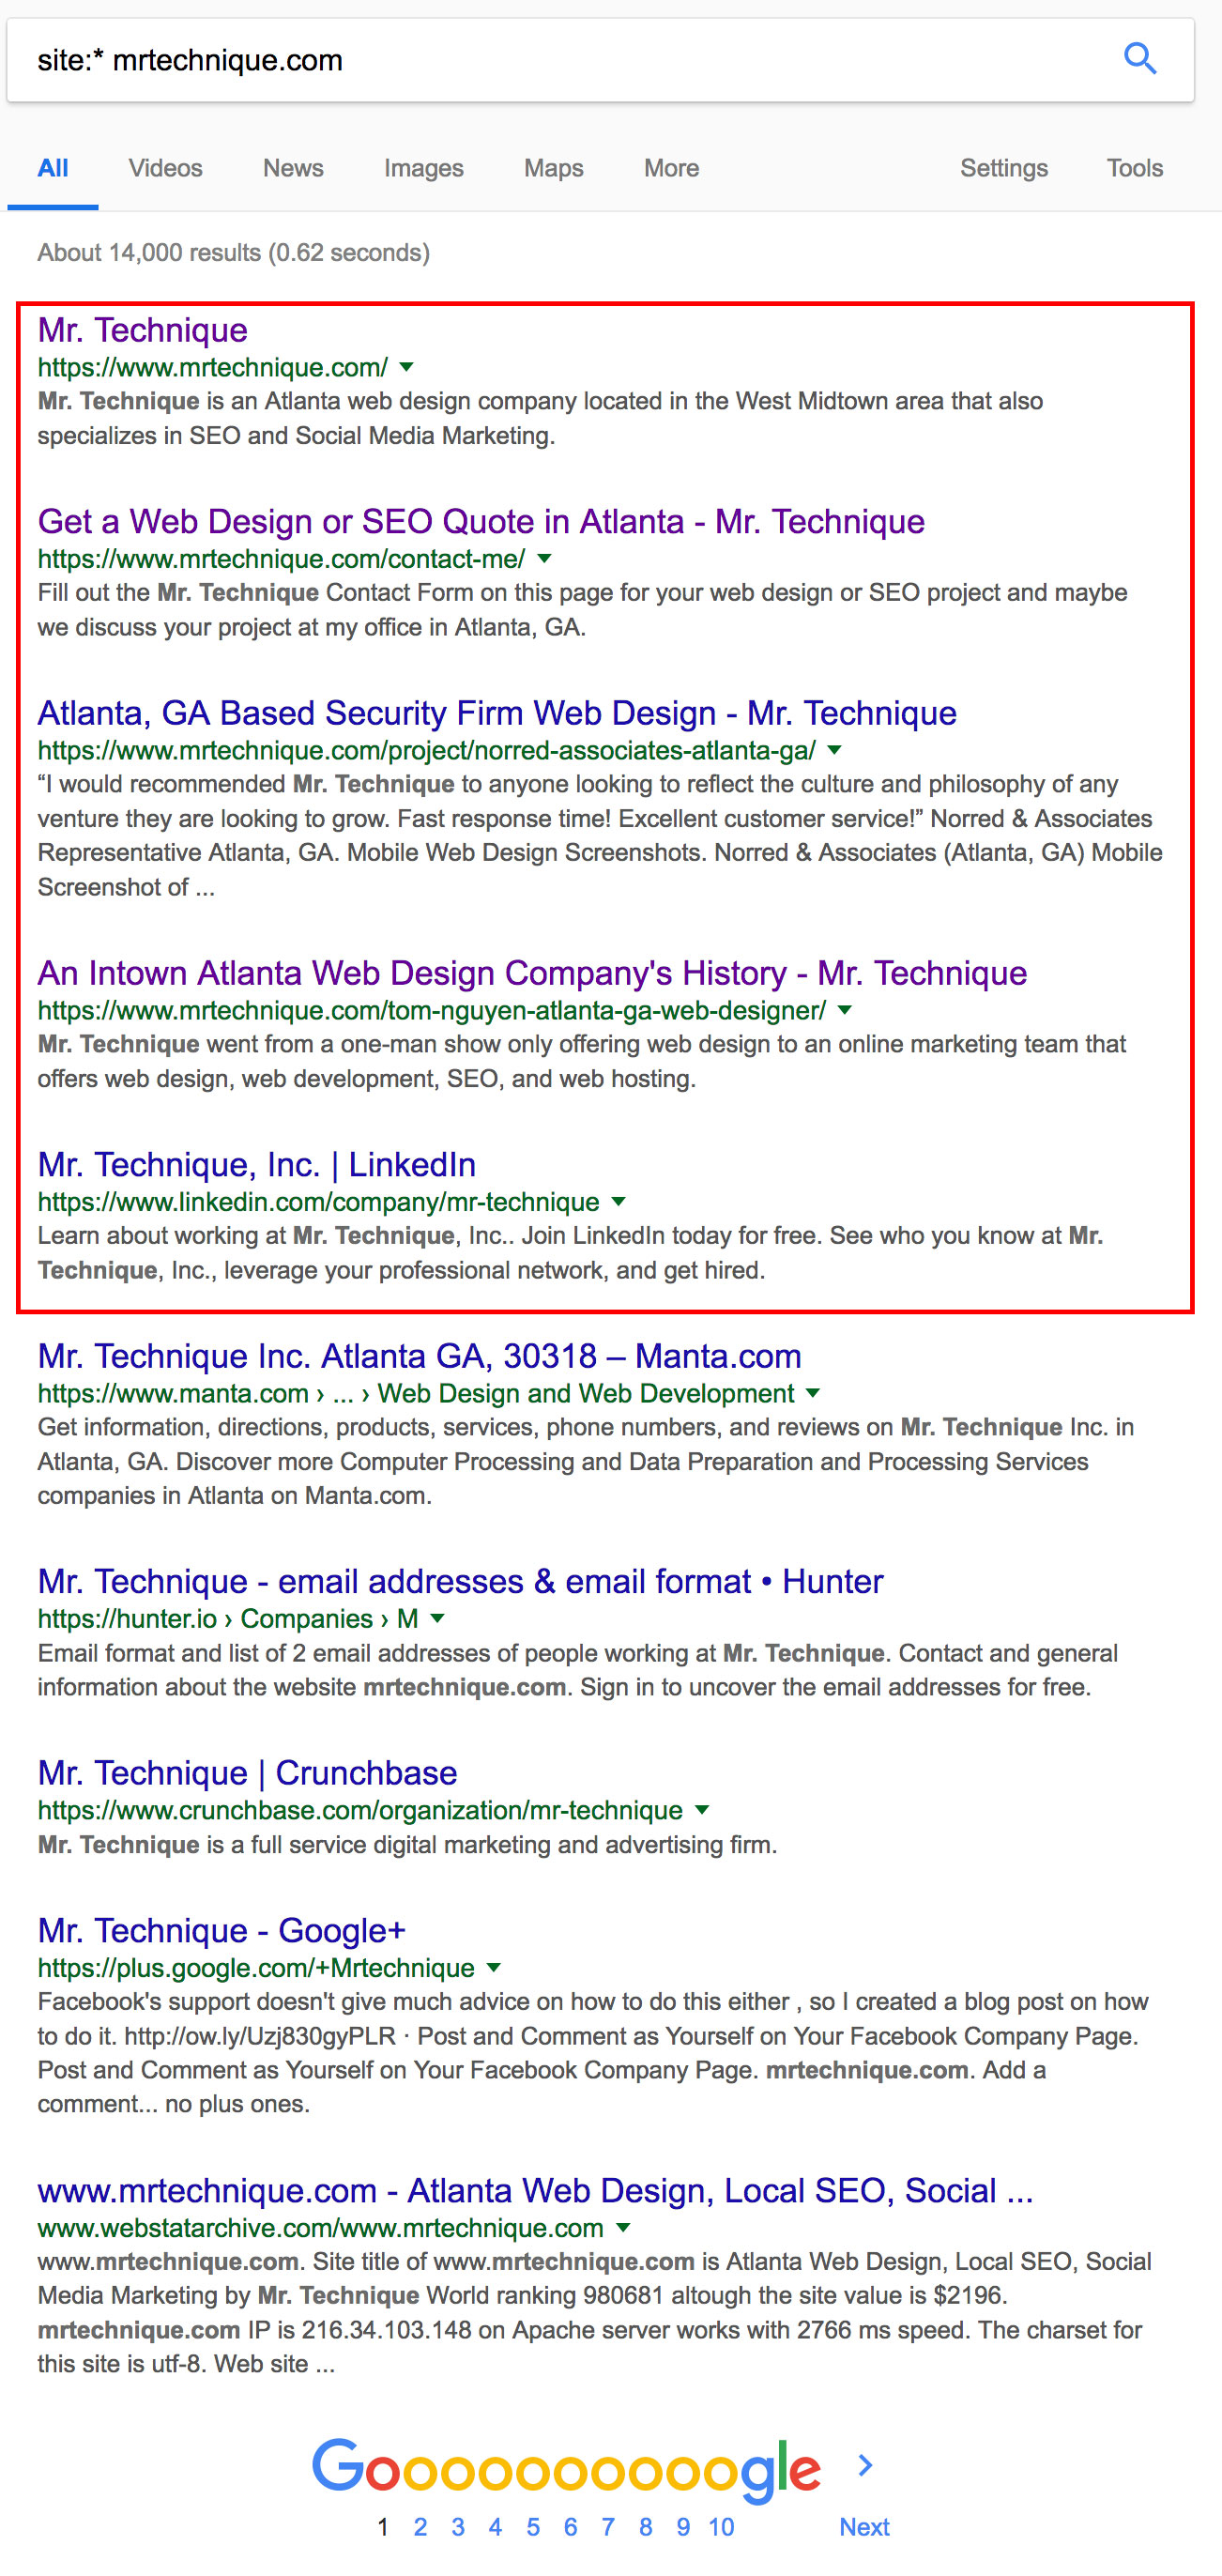 Site Asterisk (*) Search Query for mrtechnique.com